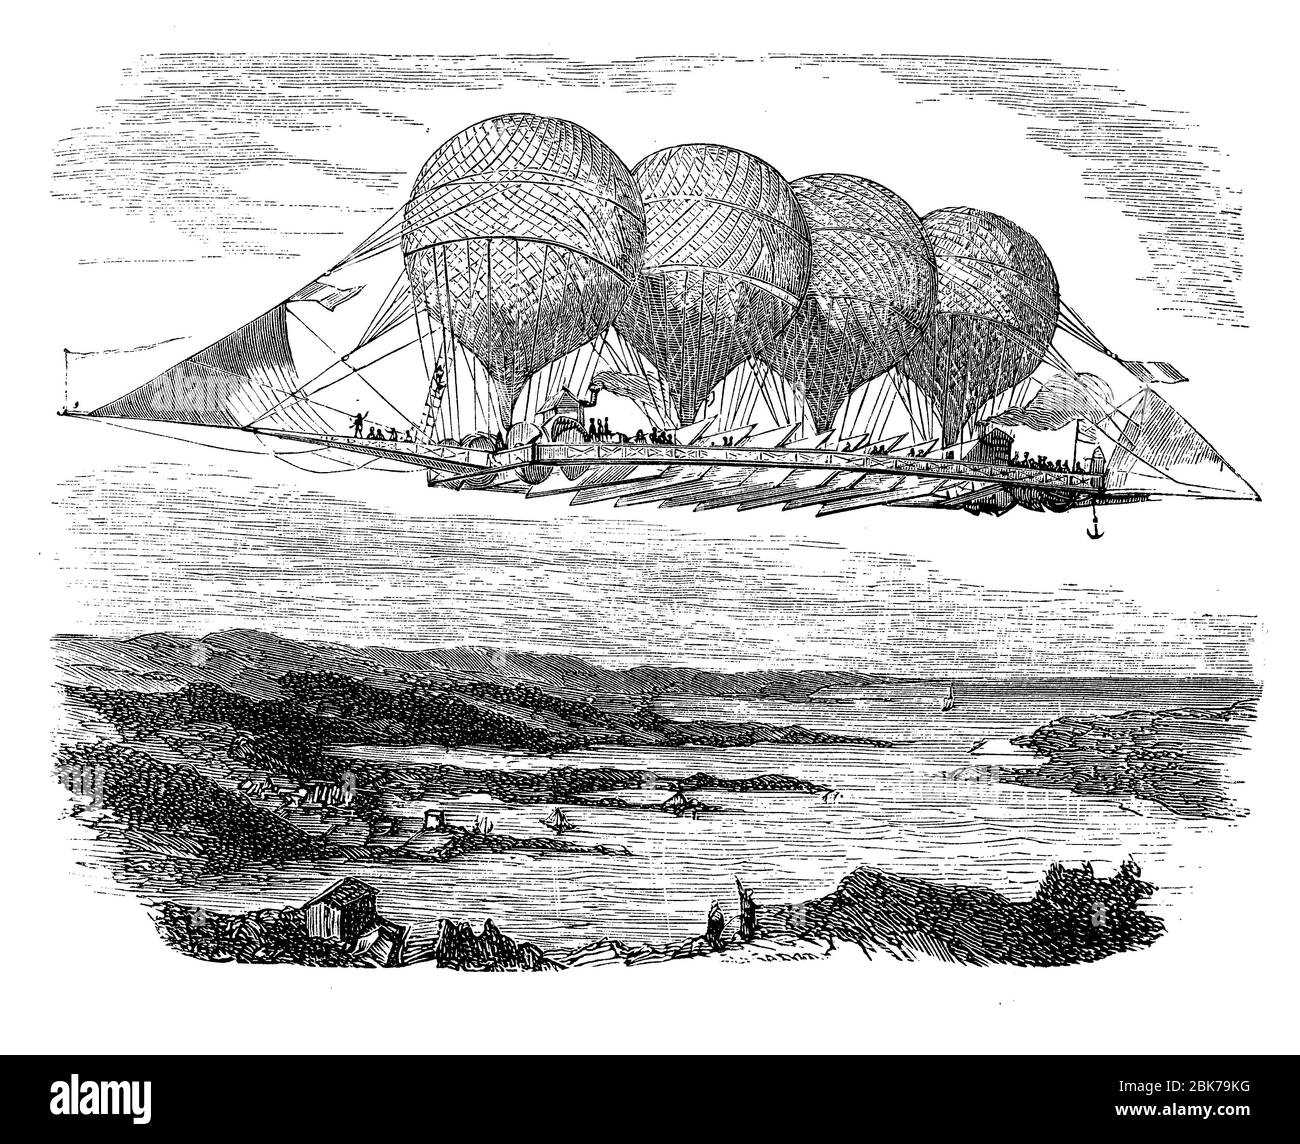 Monsier Petin French balloonist designed a 160-yard-long airship held aloft by four balloons with a platform and a steering system, 1850 Stock Photo